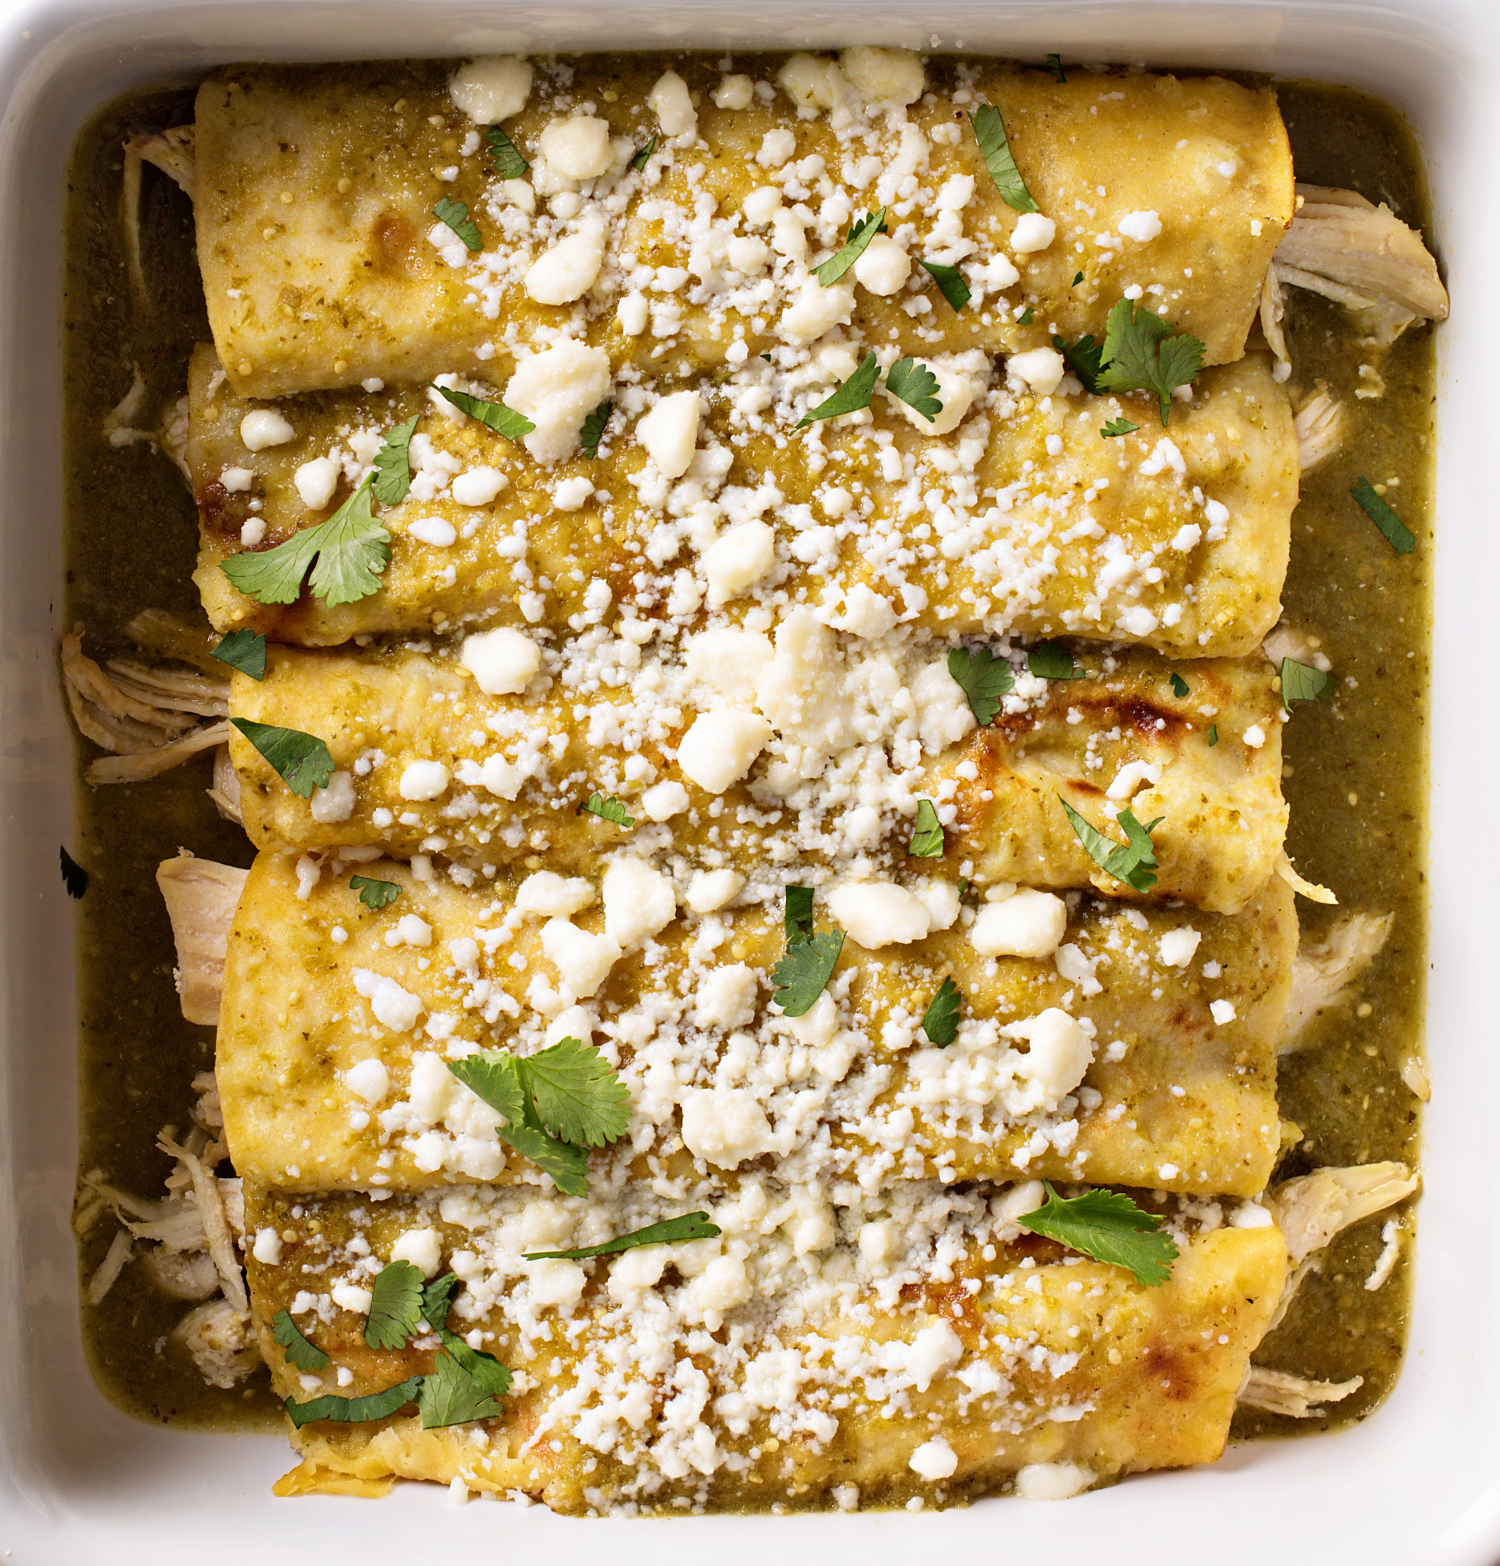 Closeup of Enchiladas Verdes (Green Enchiladas) in a pan. Top down view. Enchiladas are sprinkled with cotija cheese and cilantro.